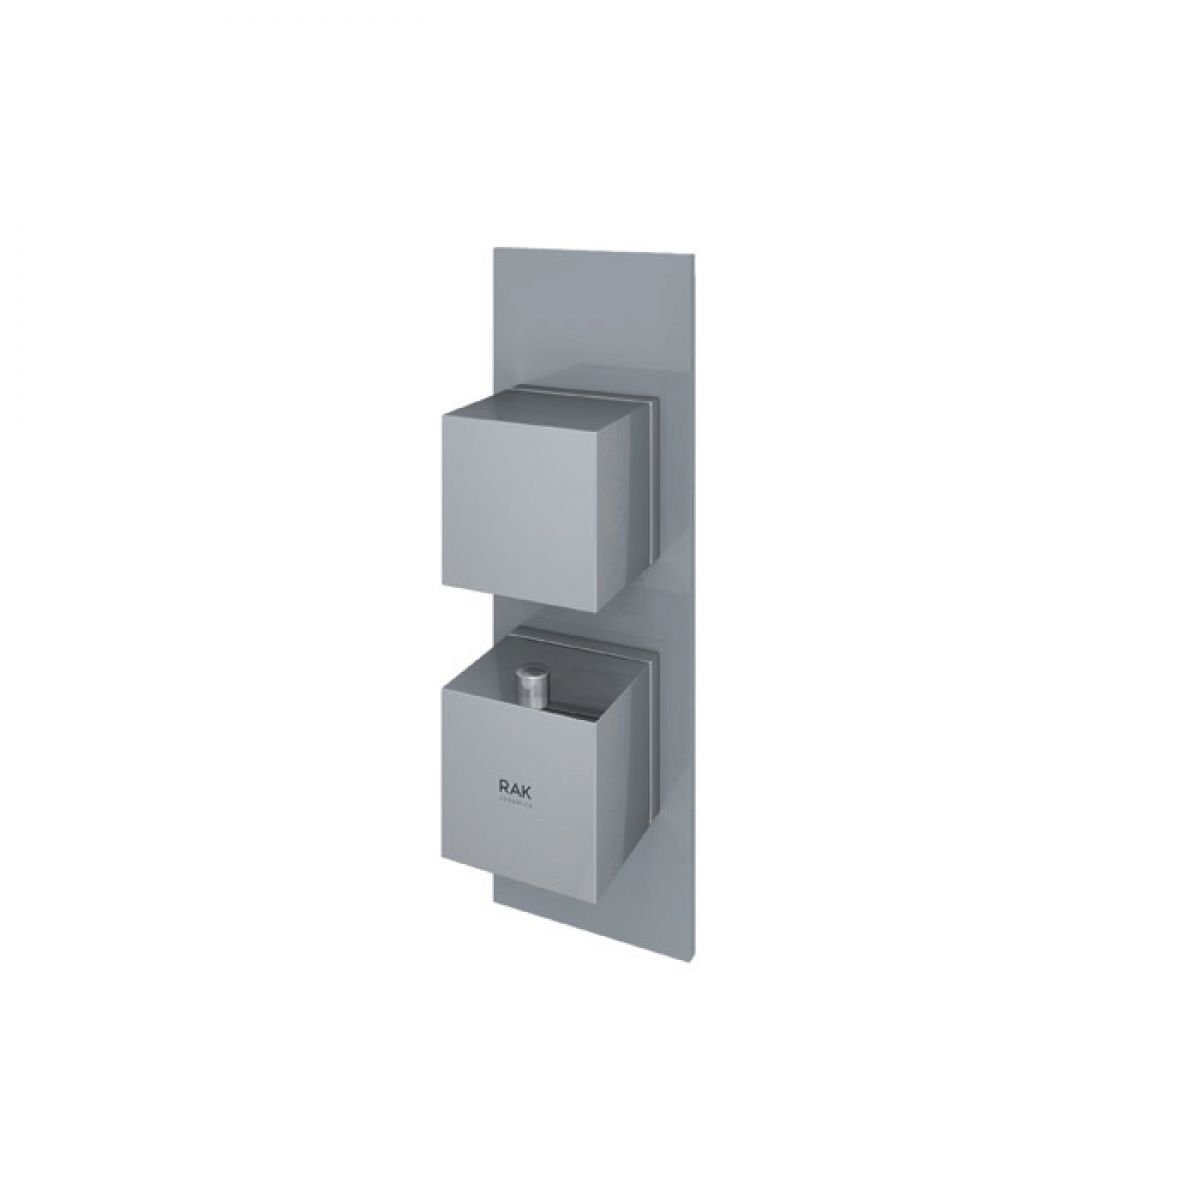 RAK Feeling Grey Square Single Outlet Thermostatic Shower Valve